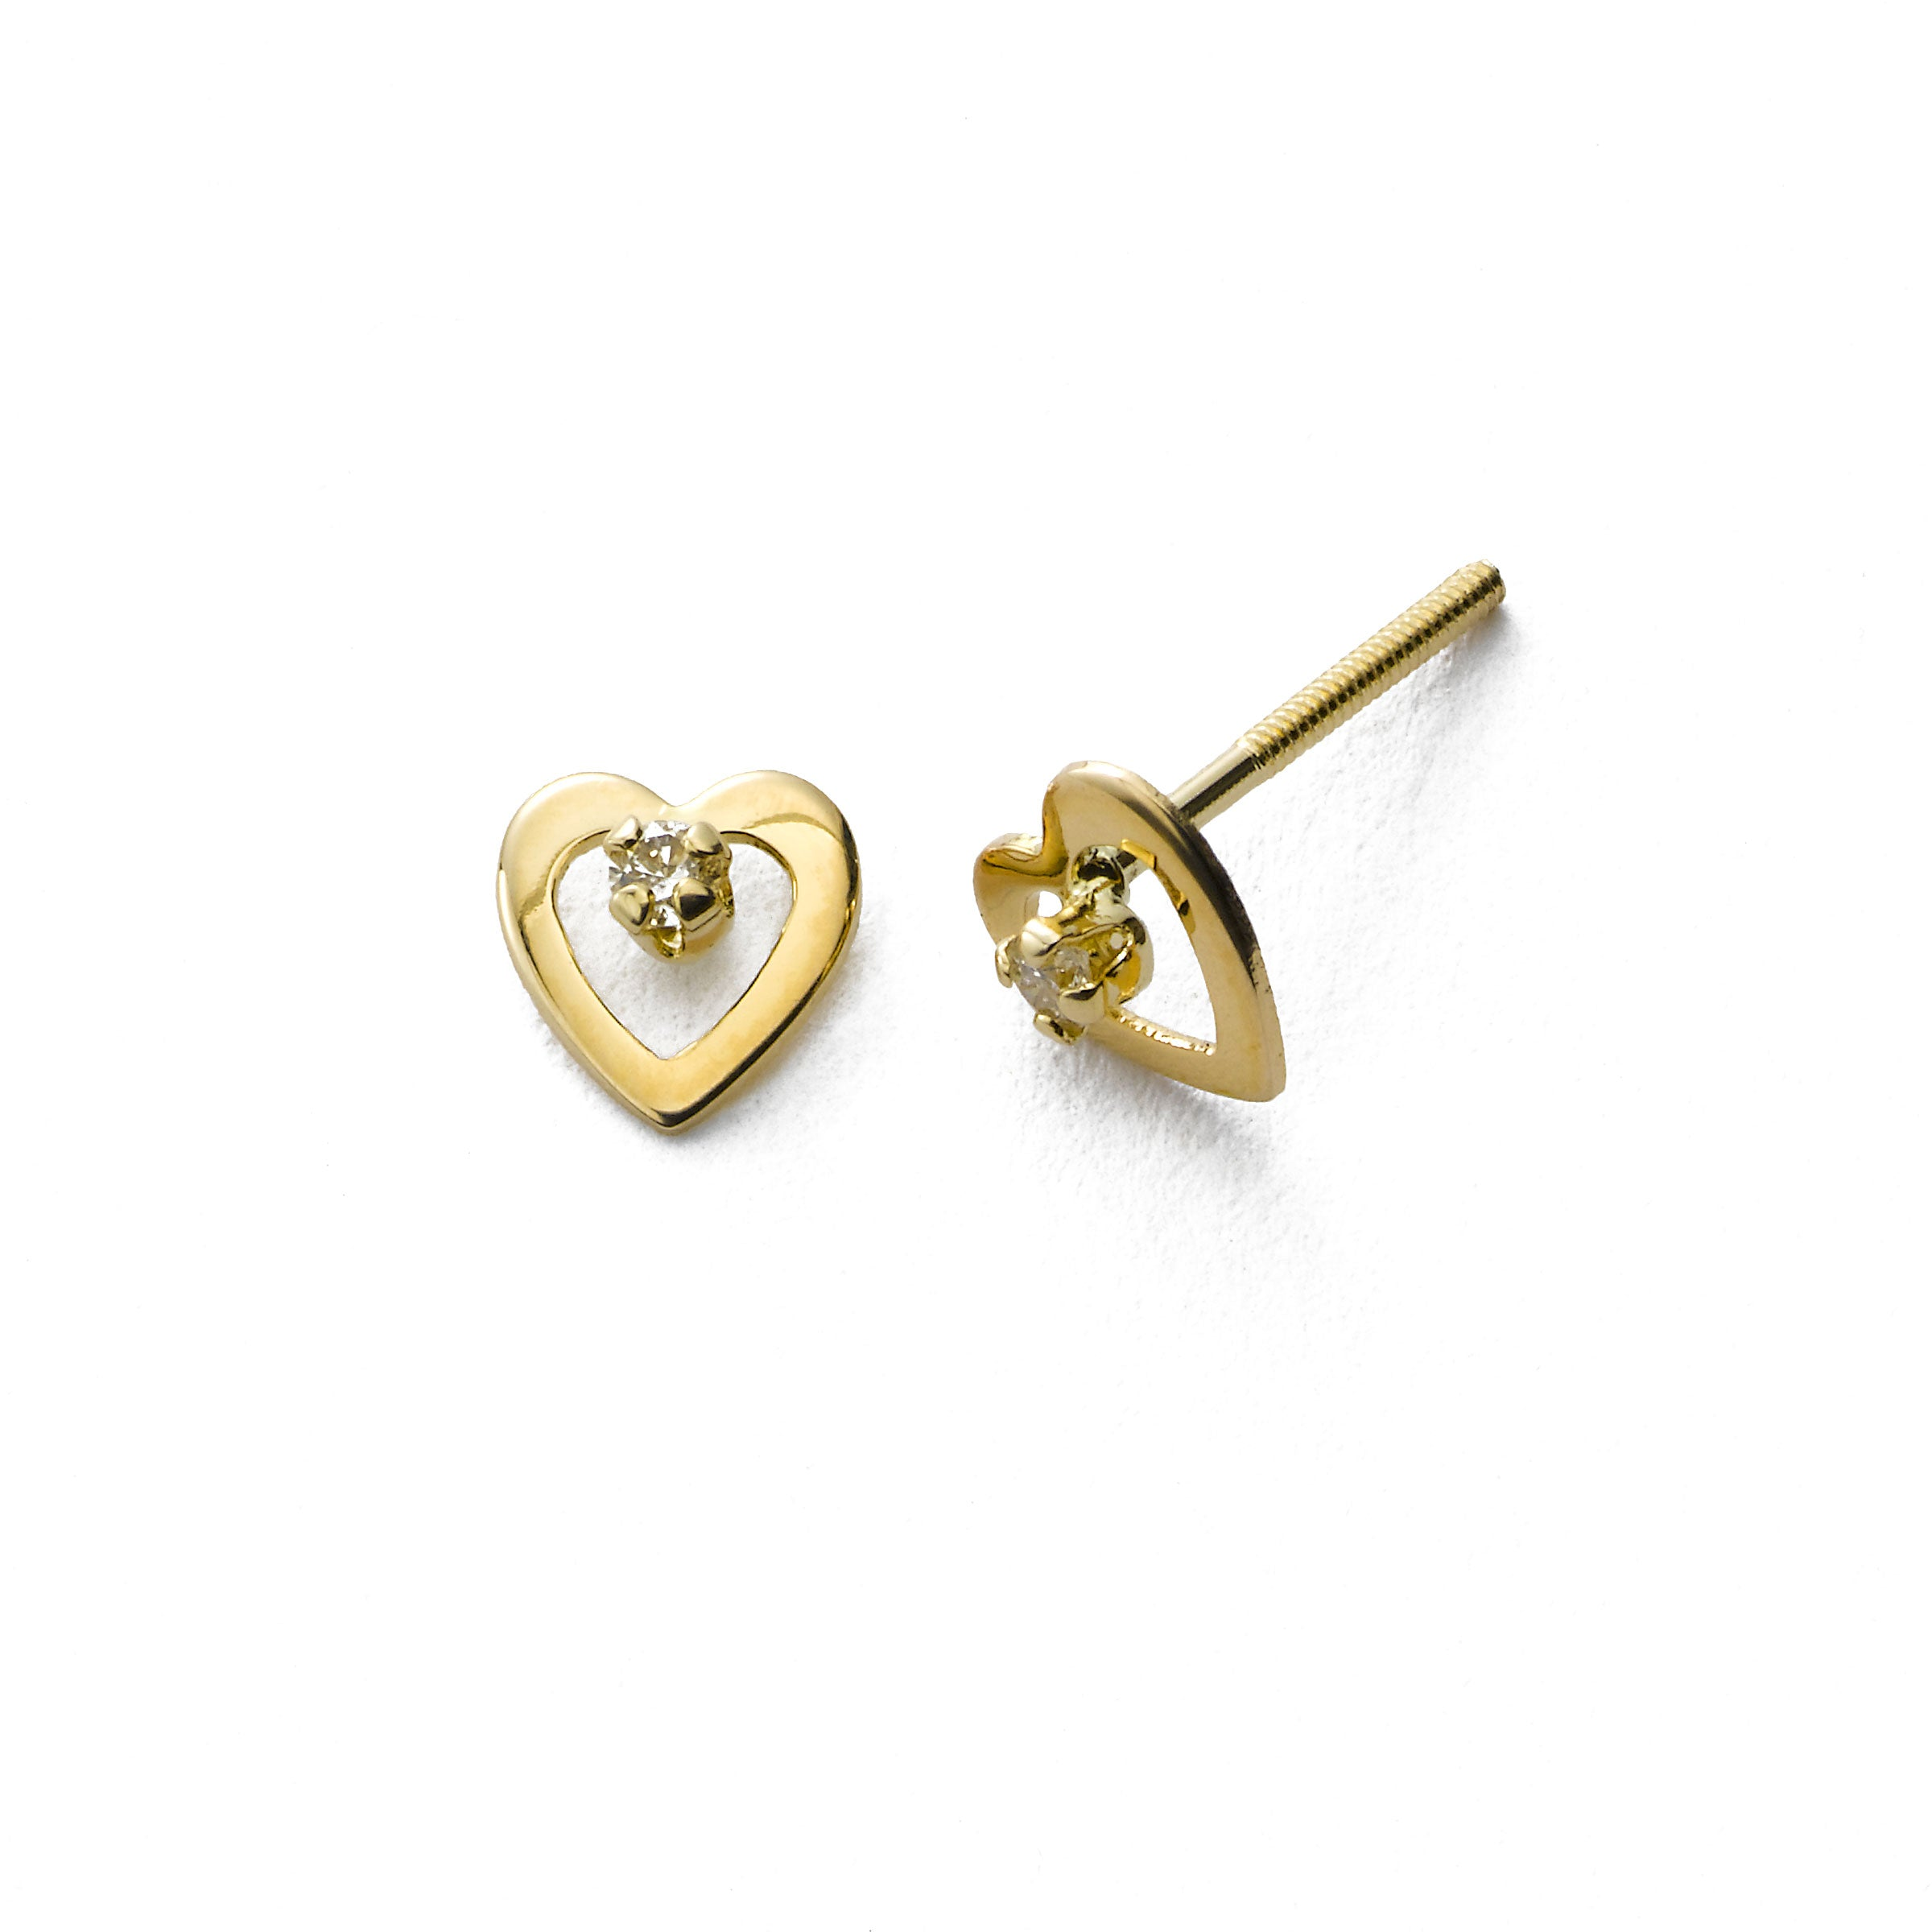 Child's Tiny Heart Earring with Diamond Accent, 14K